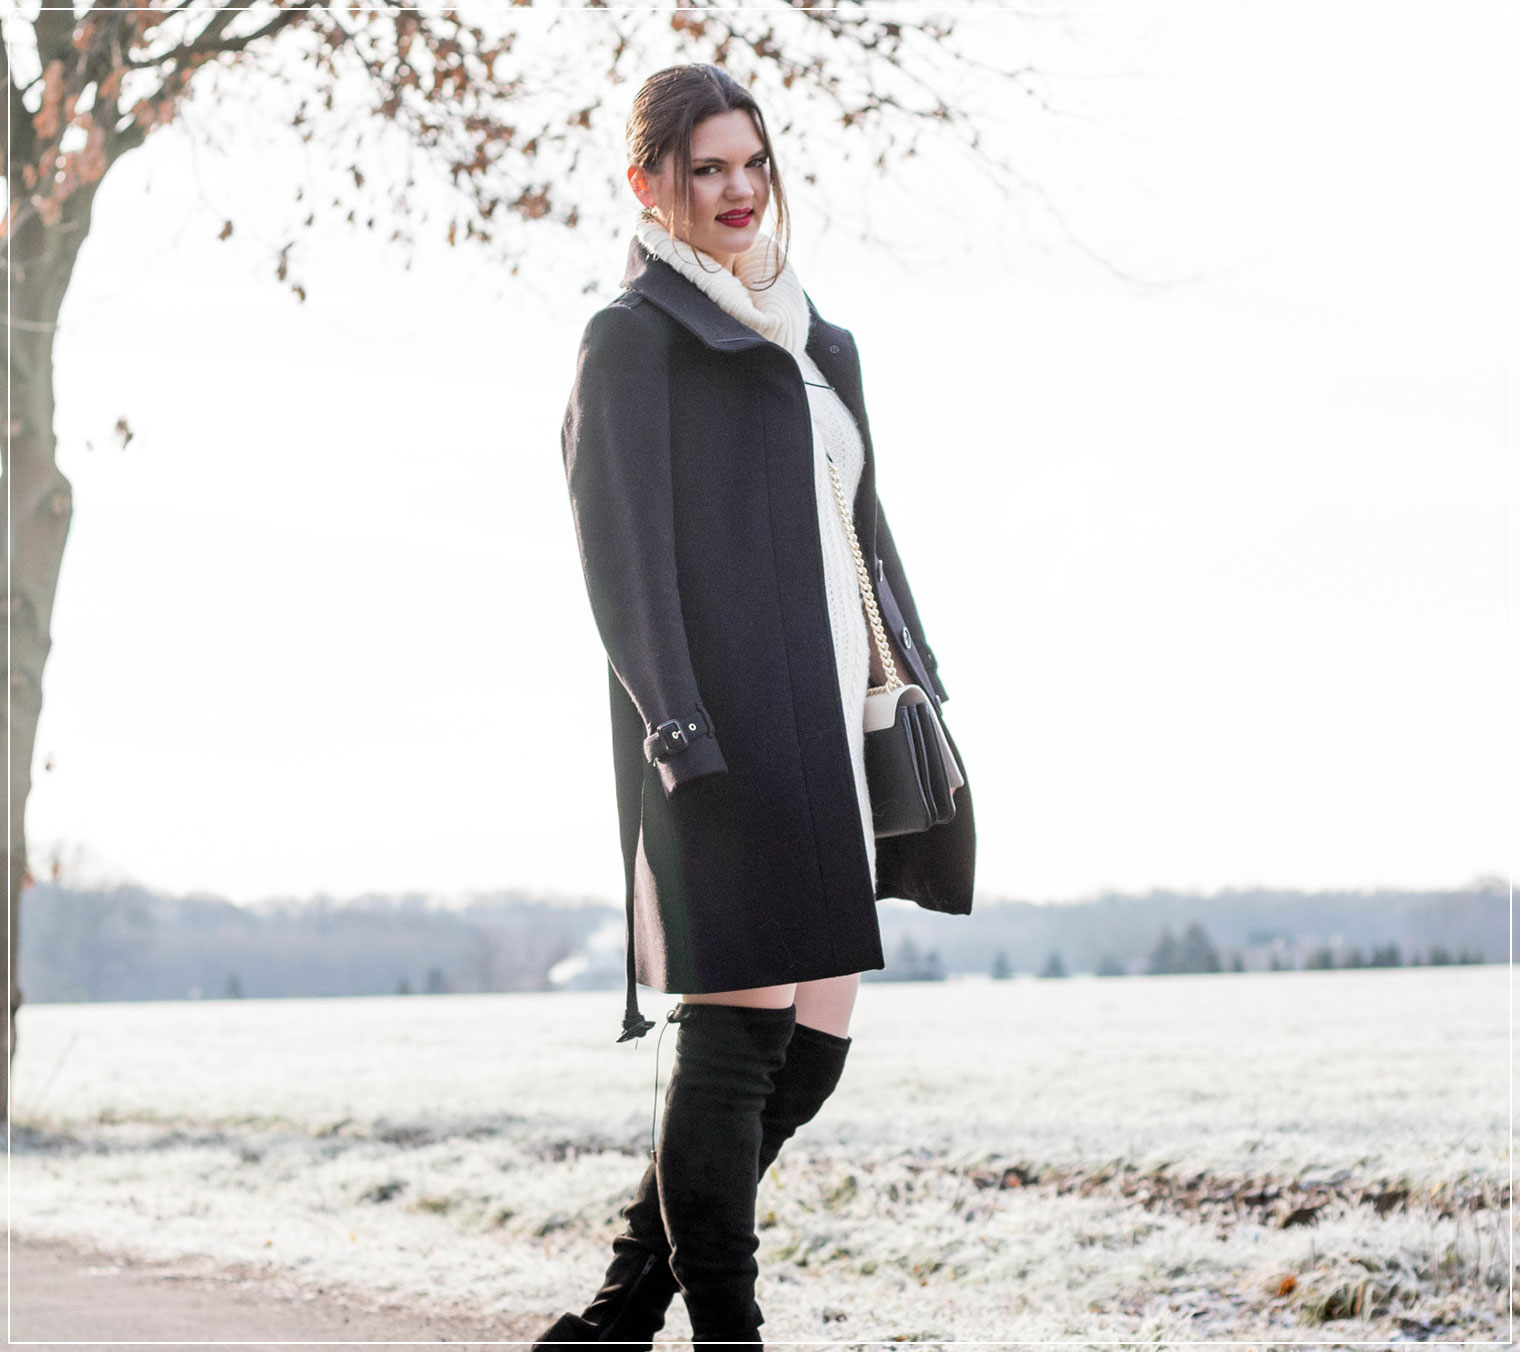 Winter, Winterliebe, Winter Liebeserklaerung, Winteroutfit, Winter Styling, Blog, Ruhrgebiet, Modeblog